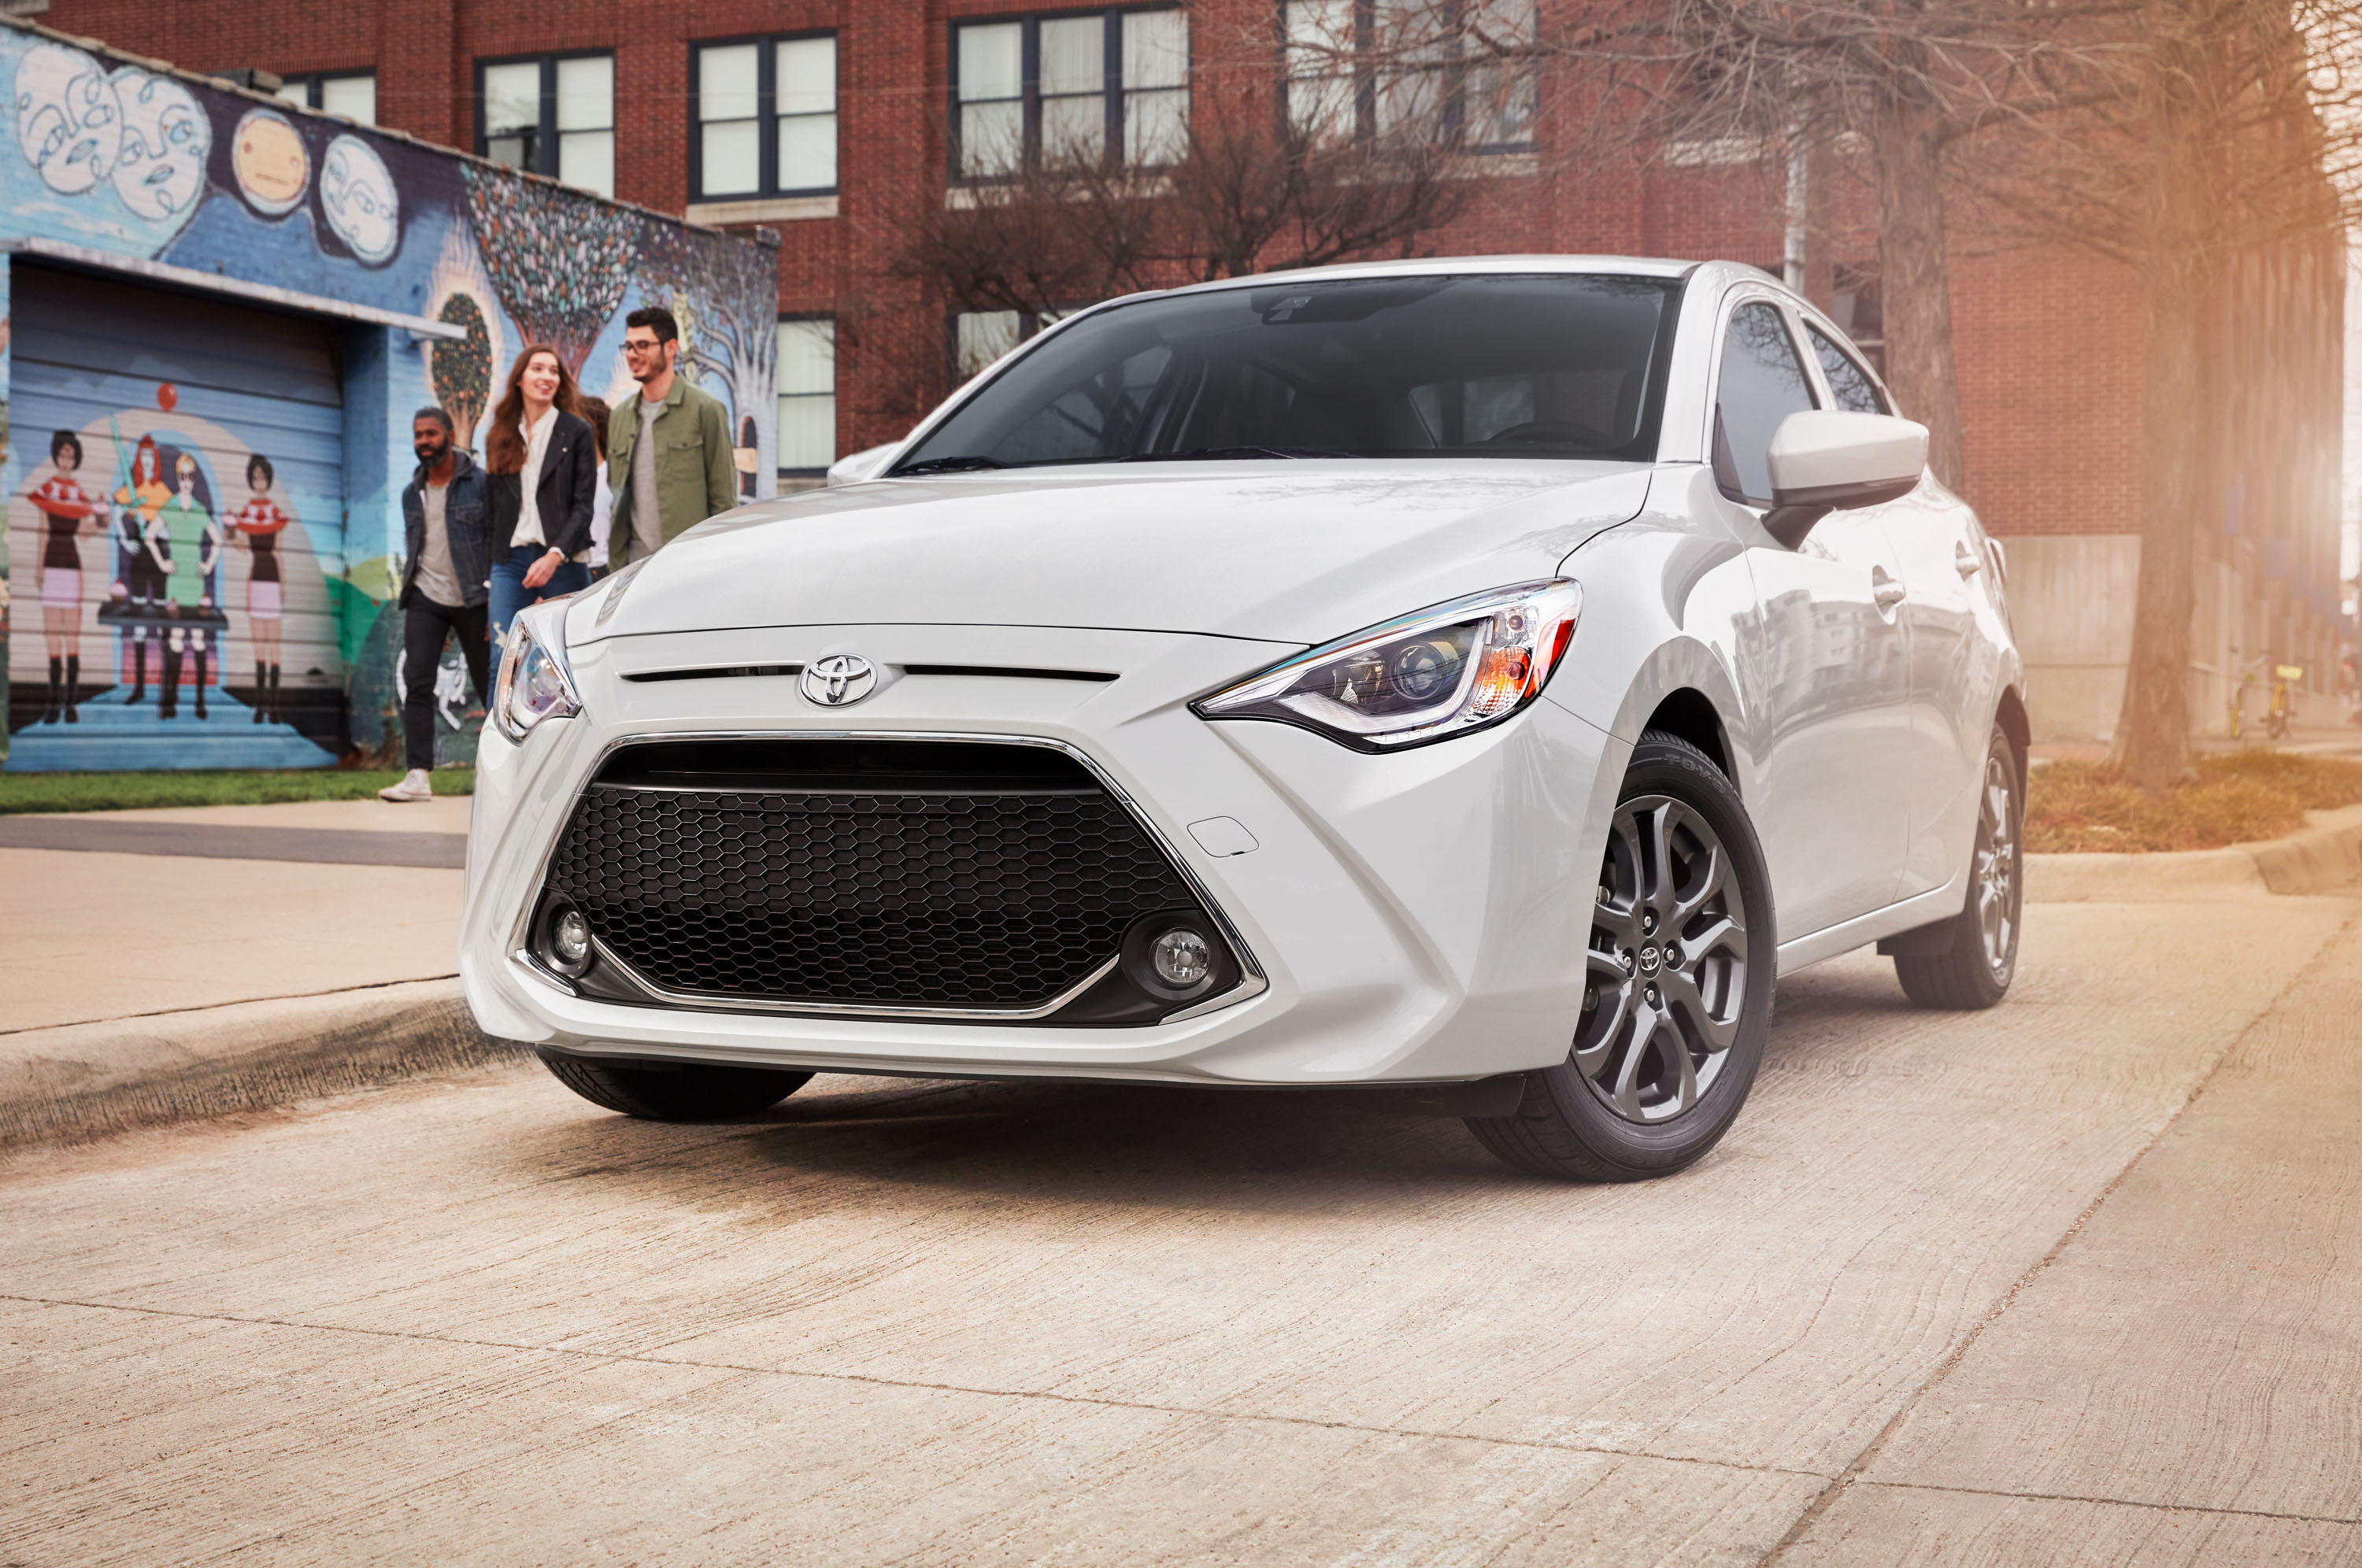 Toyota Yaris gets new name, grille, 3 trim levels